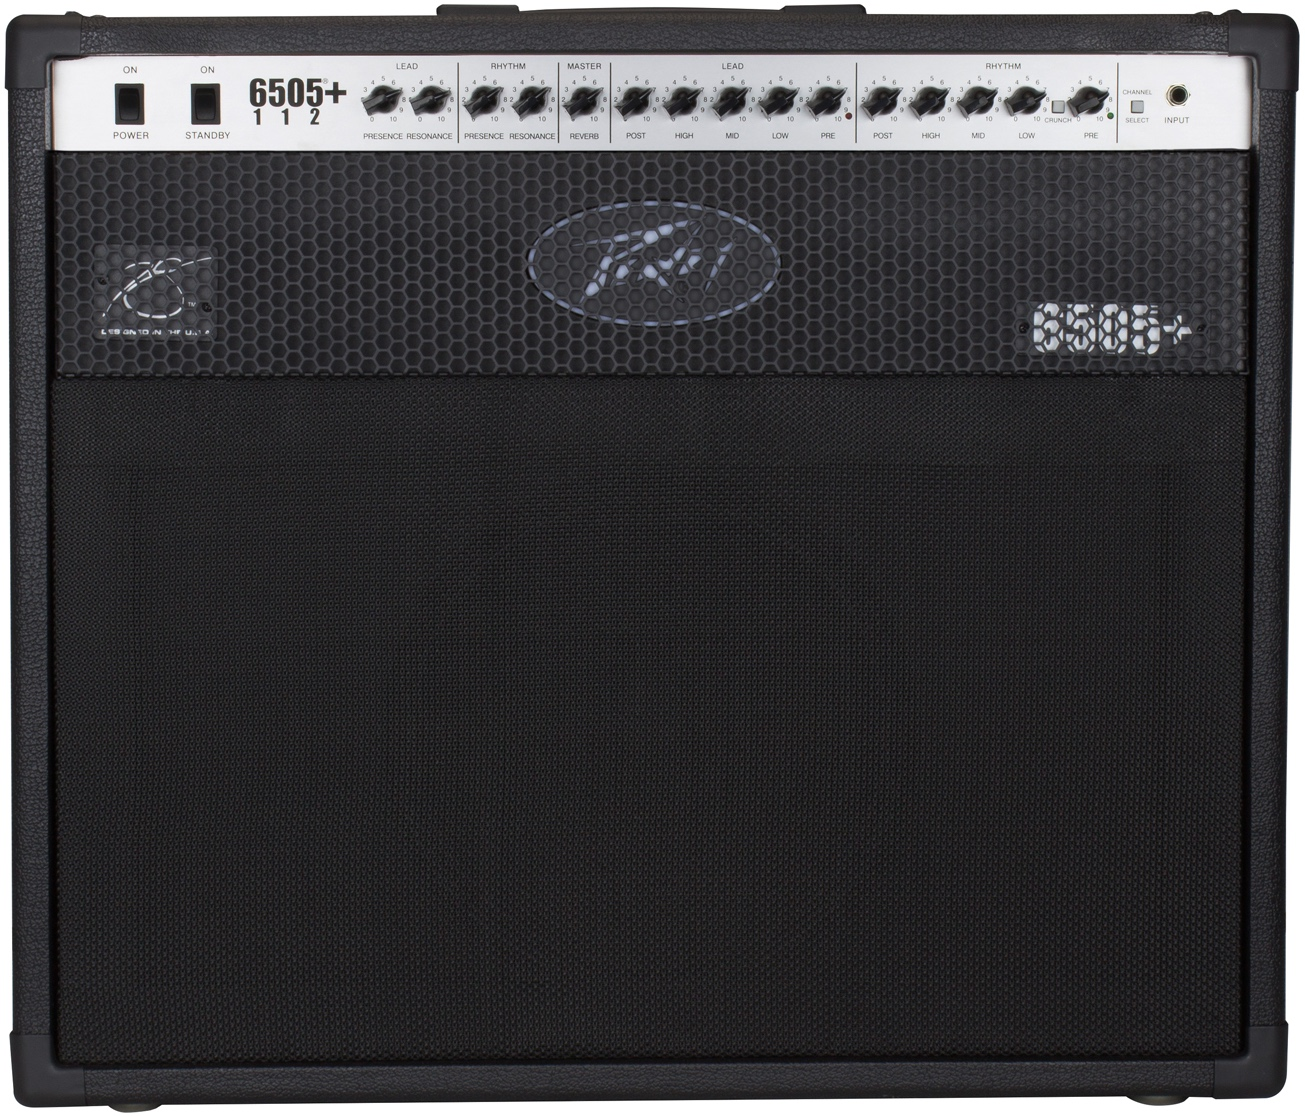 Peavey 6505 Plus 112 Tube Combo Guitar Amplifier 60W 1x12